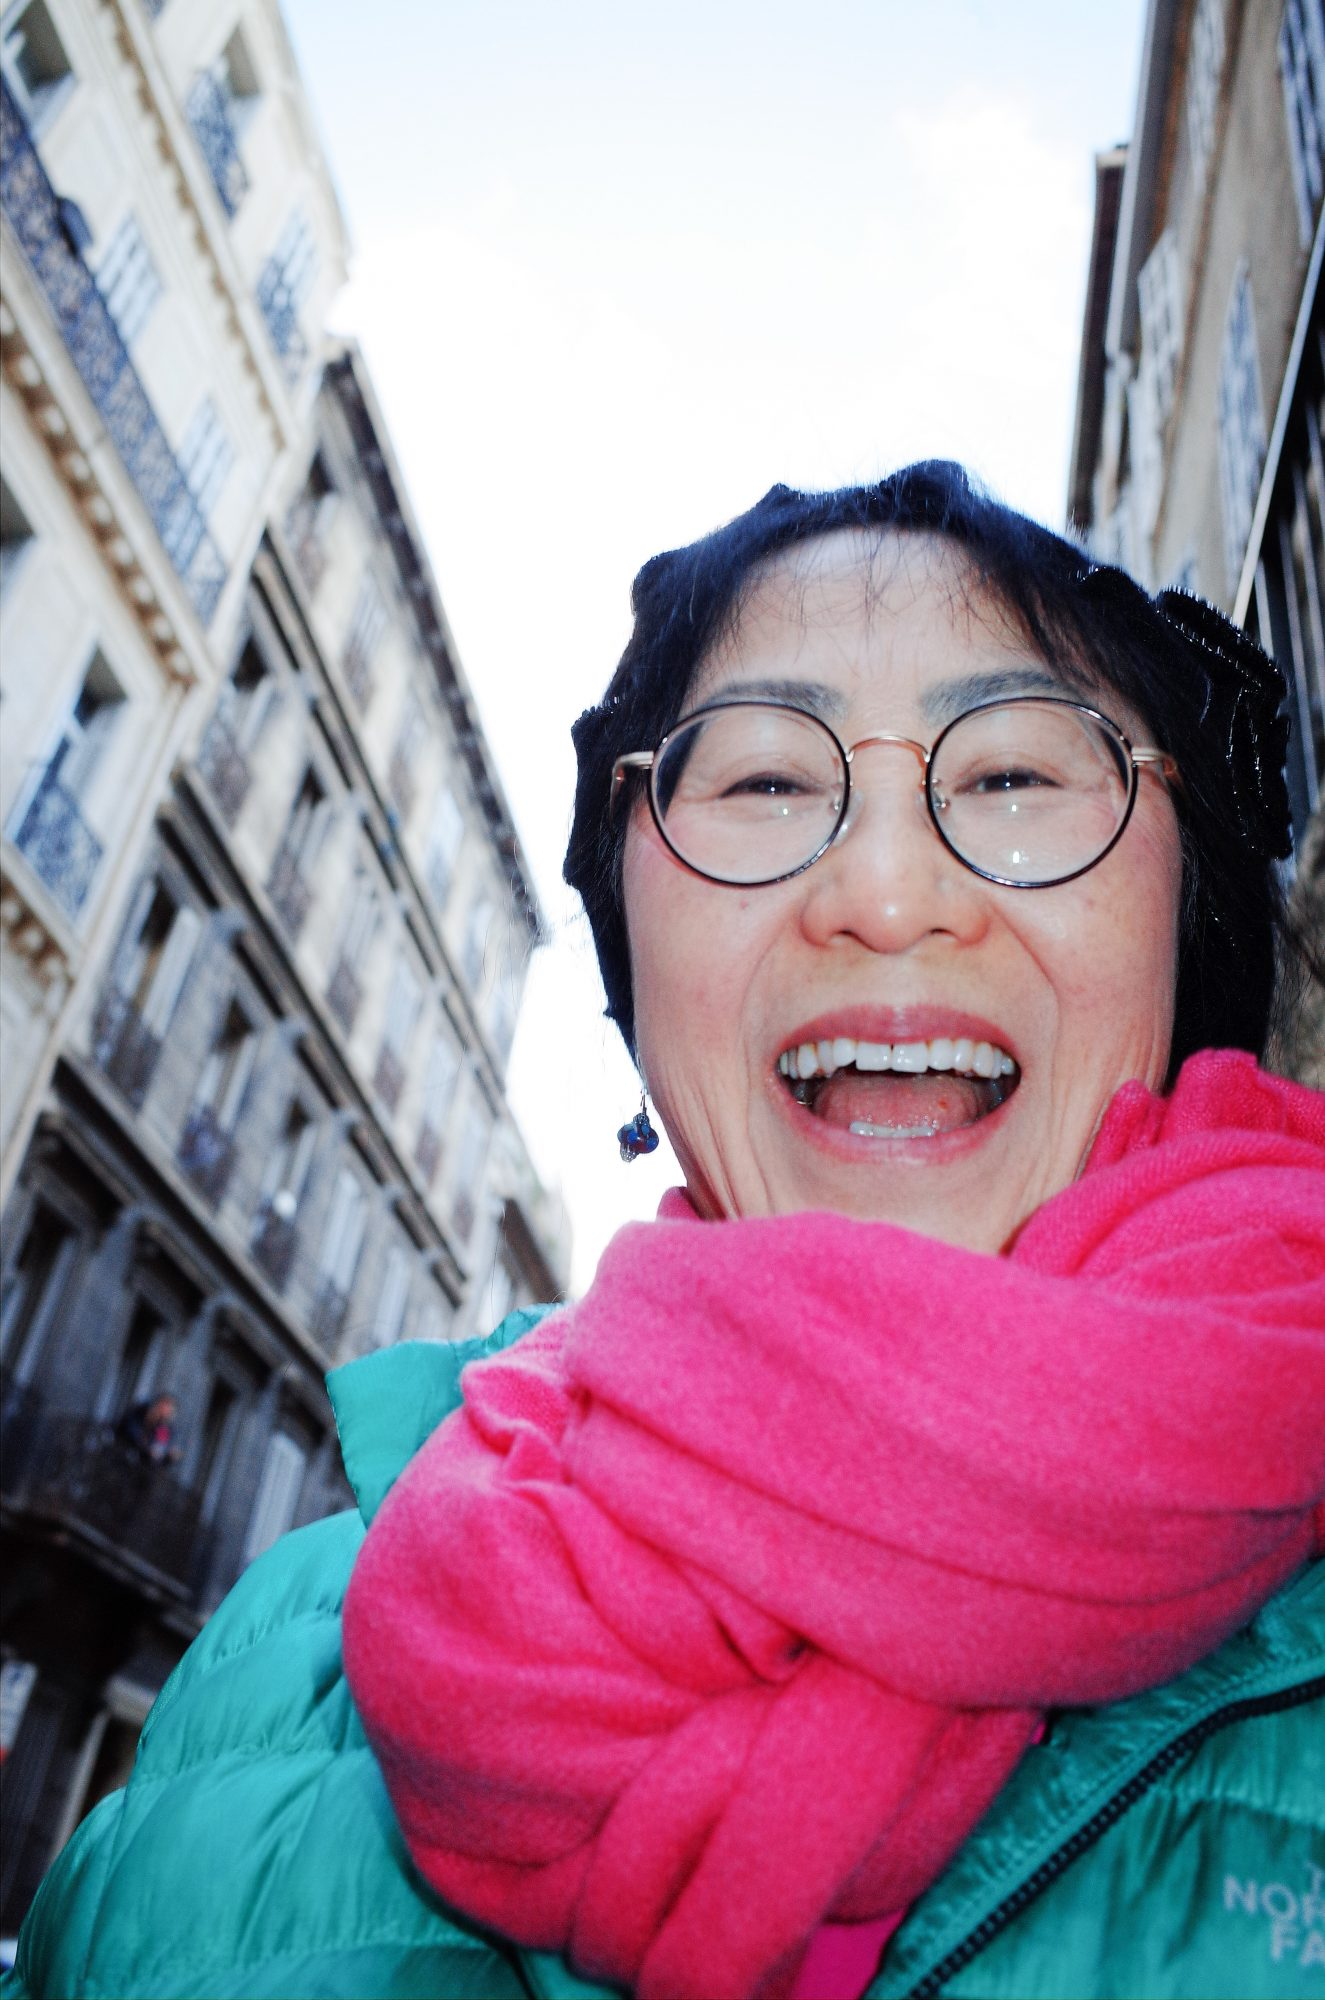 My mom laughing in marseille, 2018